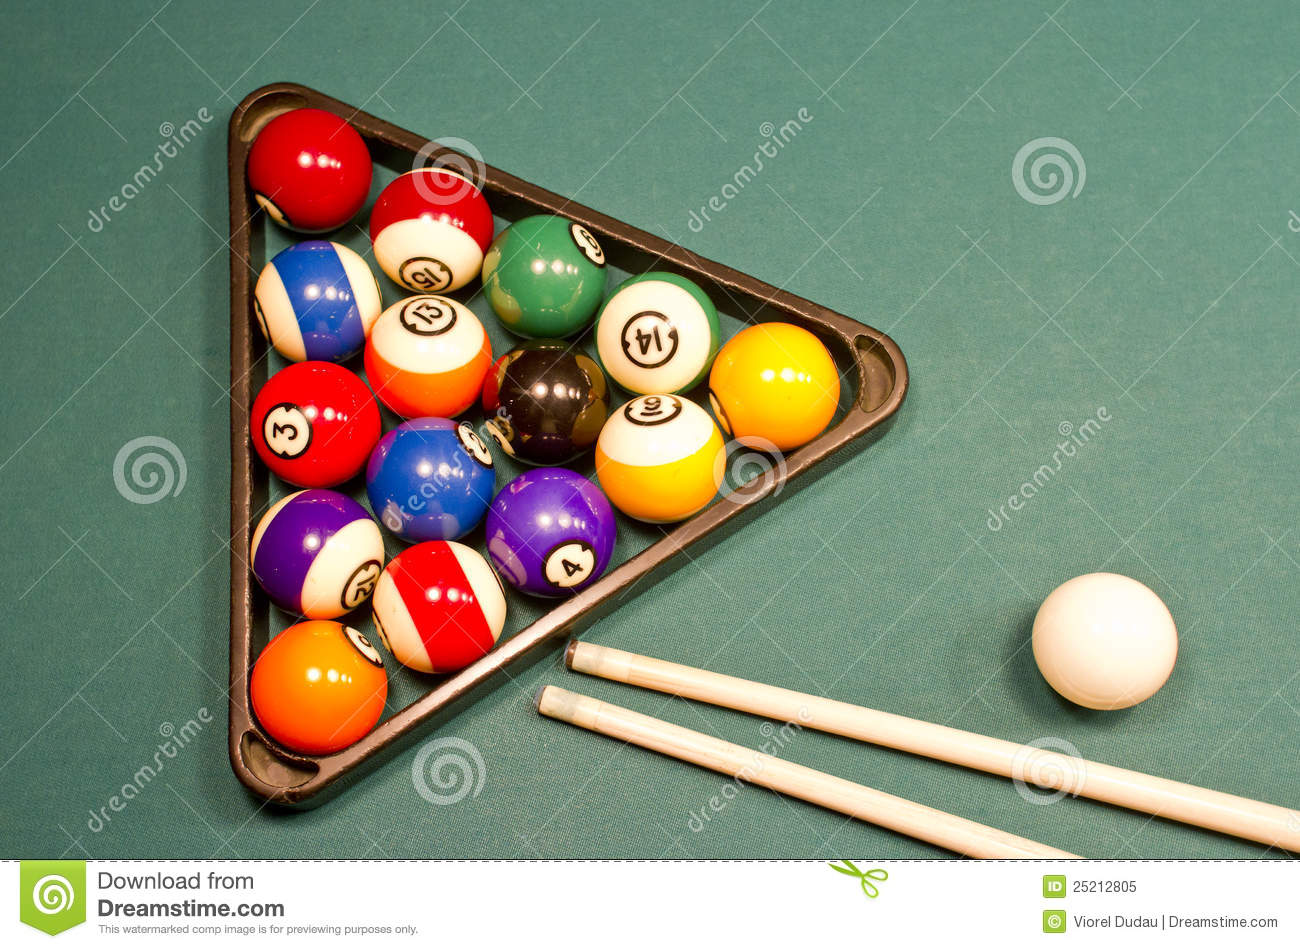 pool set friends standard emojis emoji into balls and table of a ball transform designer whimsical french rolling